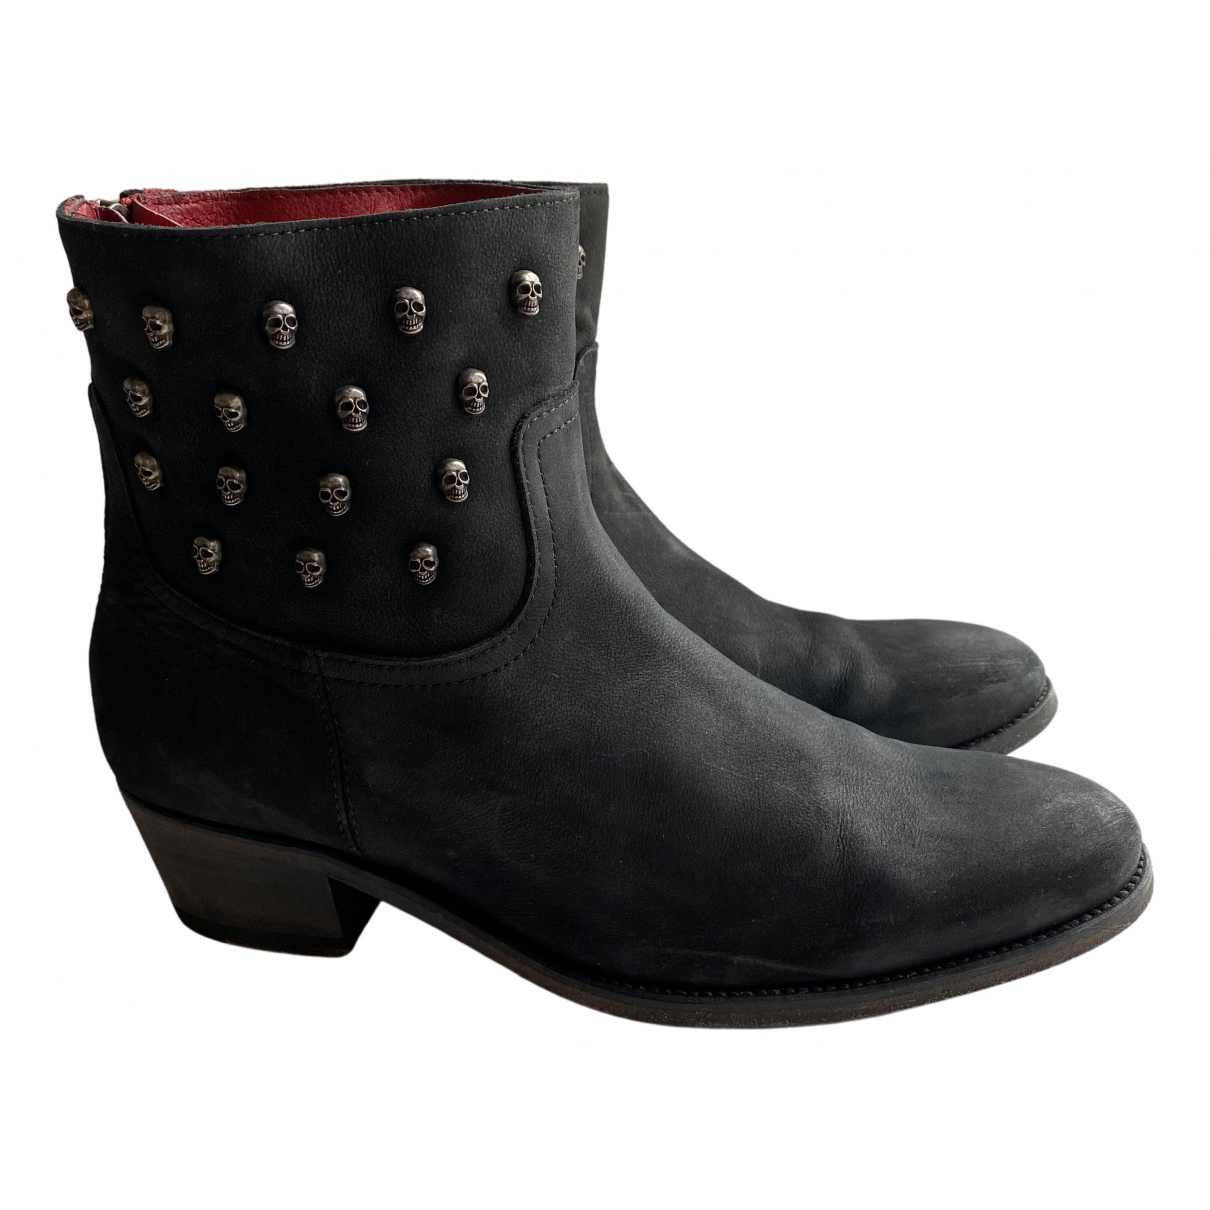 Zadig & Voltaire Teddy Black Leather Boots for Women 39 EU